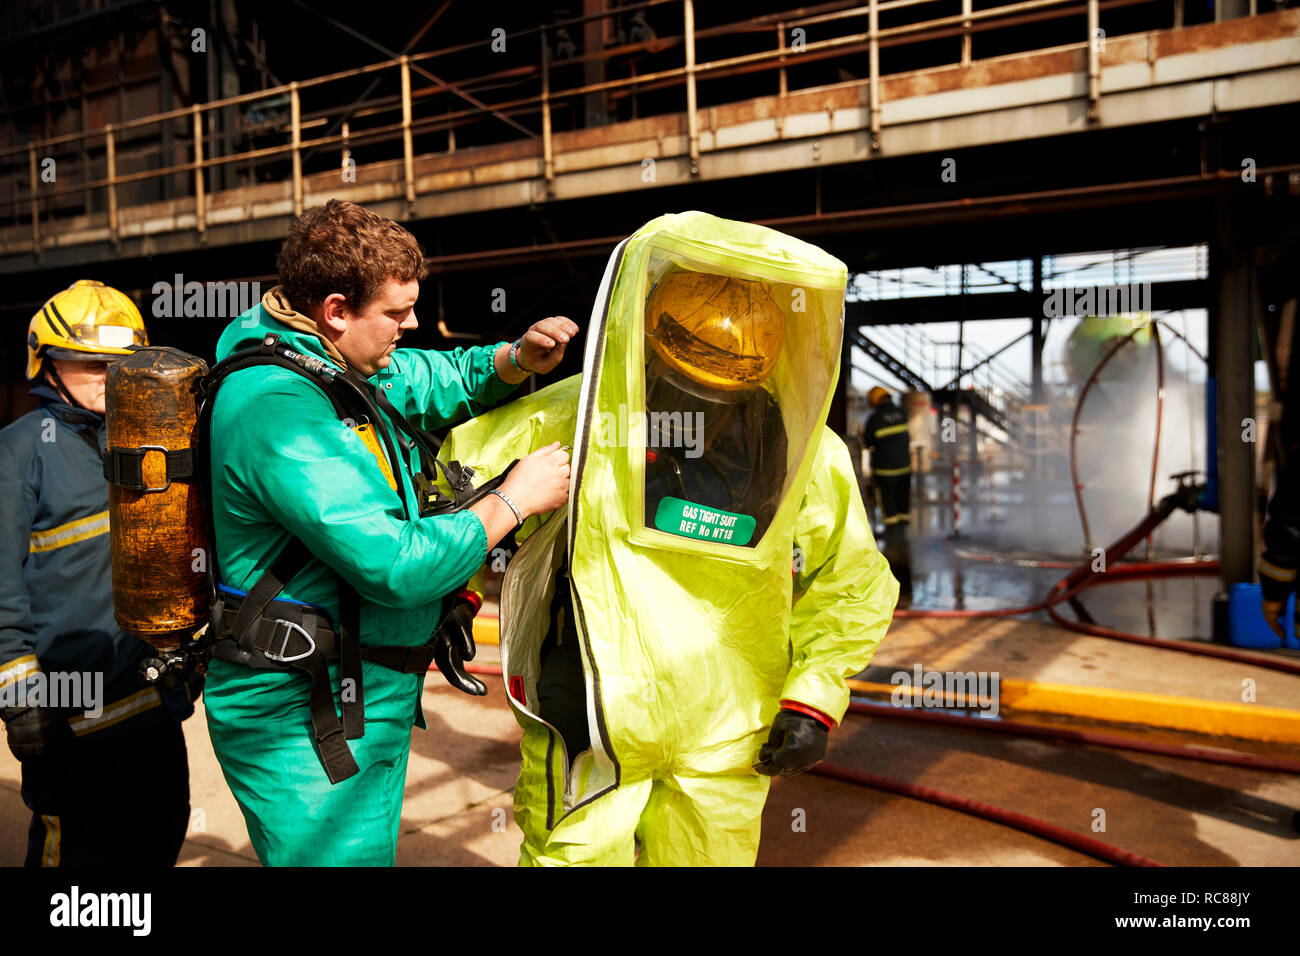 Firemen putting on fire proximity suit in training centre, Darlington, UK - Stock Image